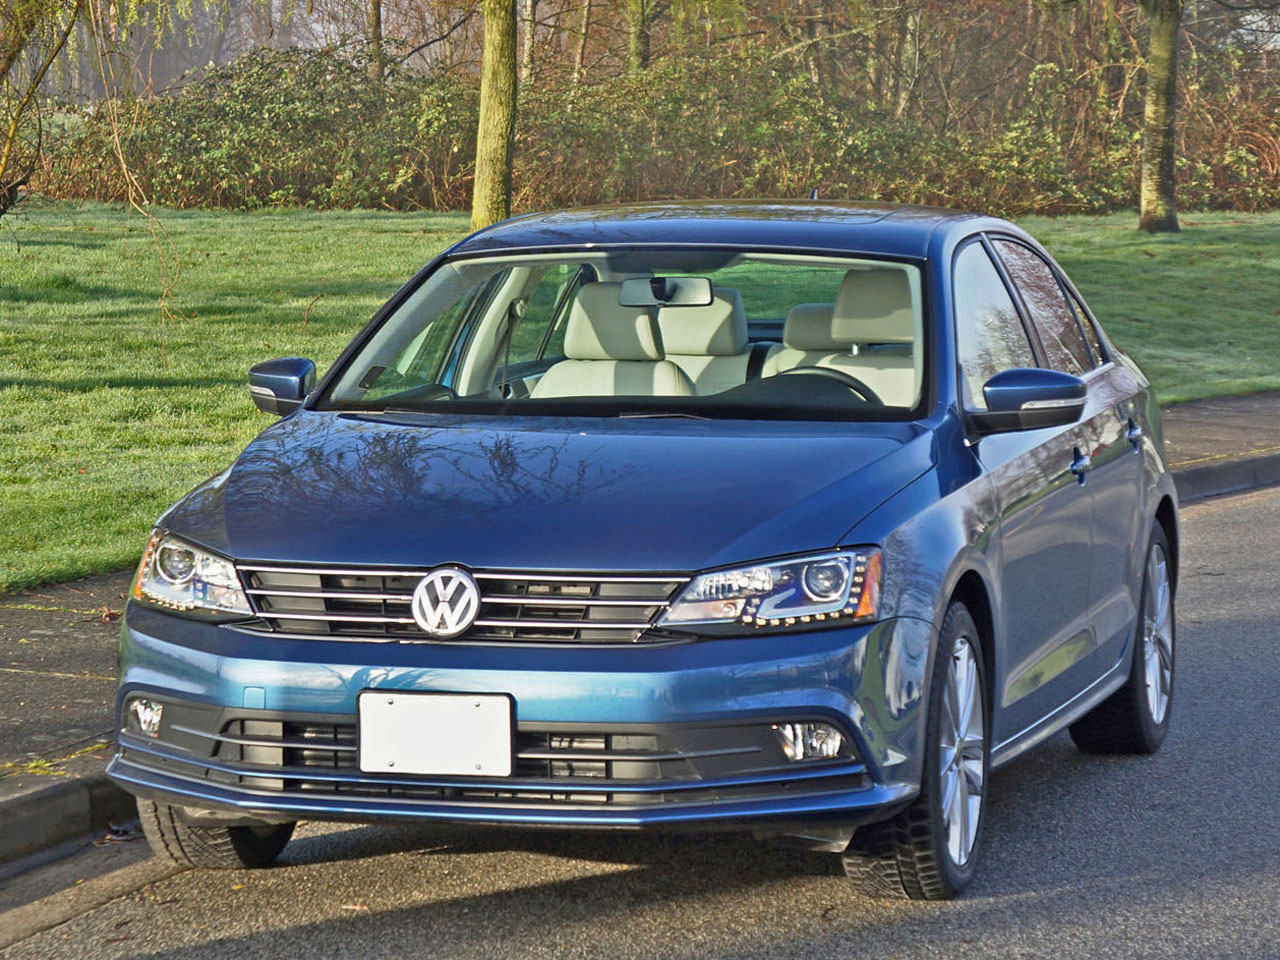 2015 volkswagen jetta 1 8 tsi se road test review carcostcanada. Black Bedroom Furniture Sets. Home Design Ideas